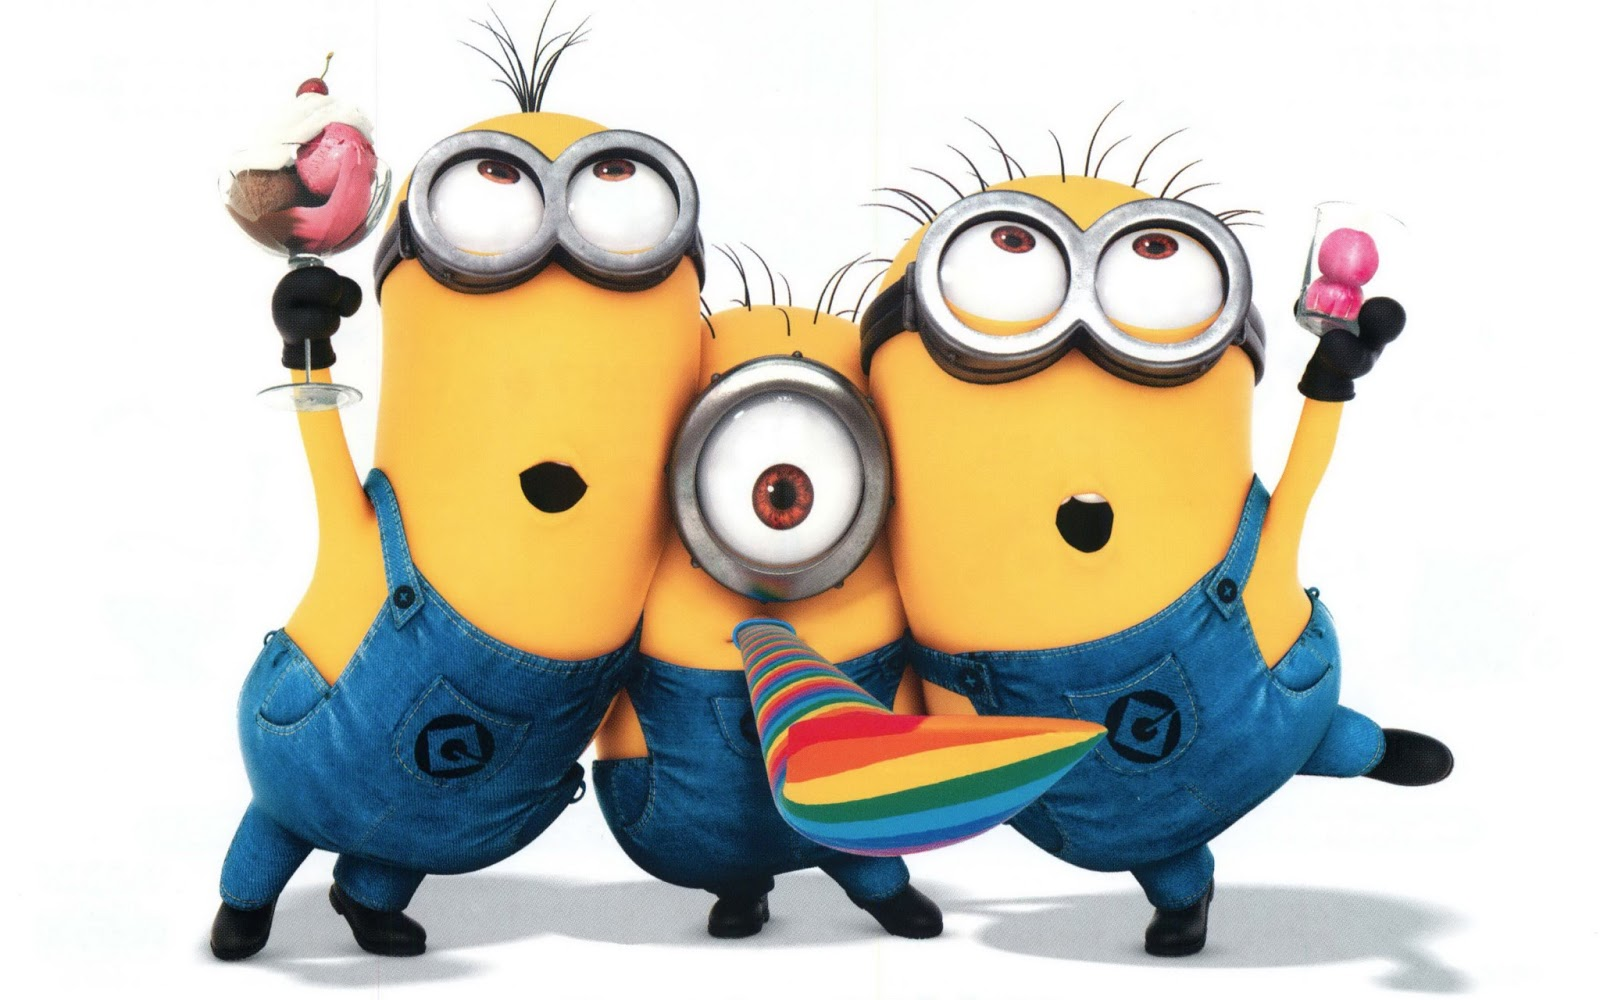 Minions In Love With Banana Images amp Pictures Becuo